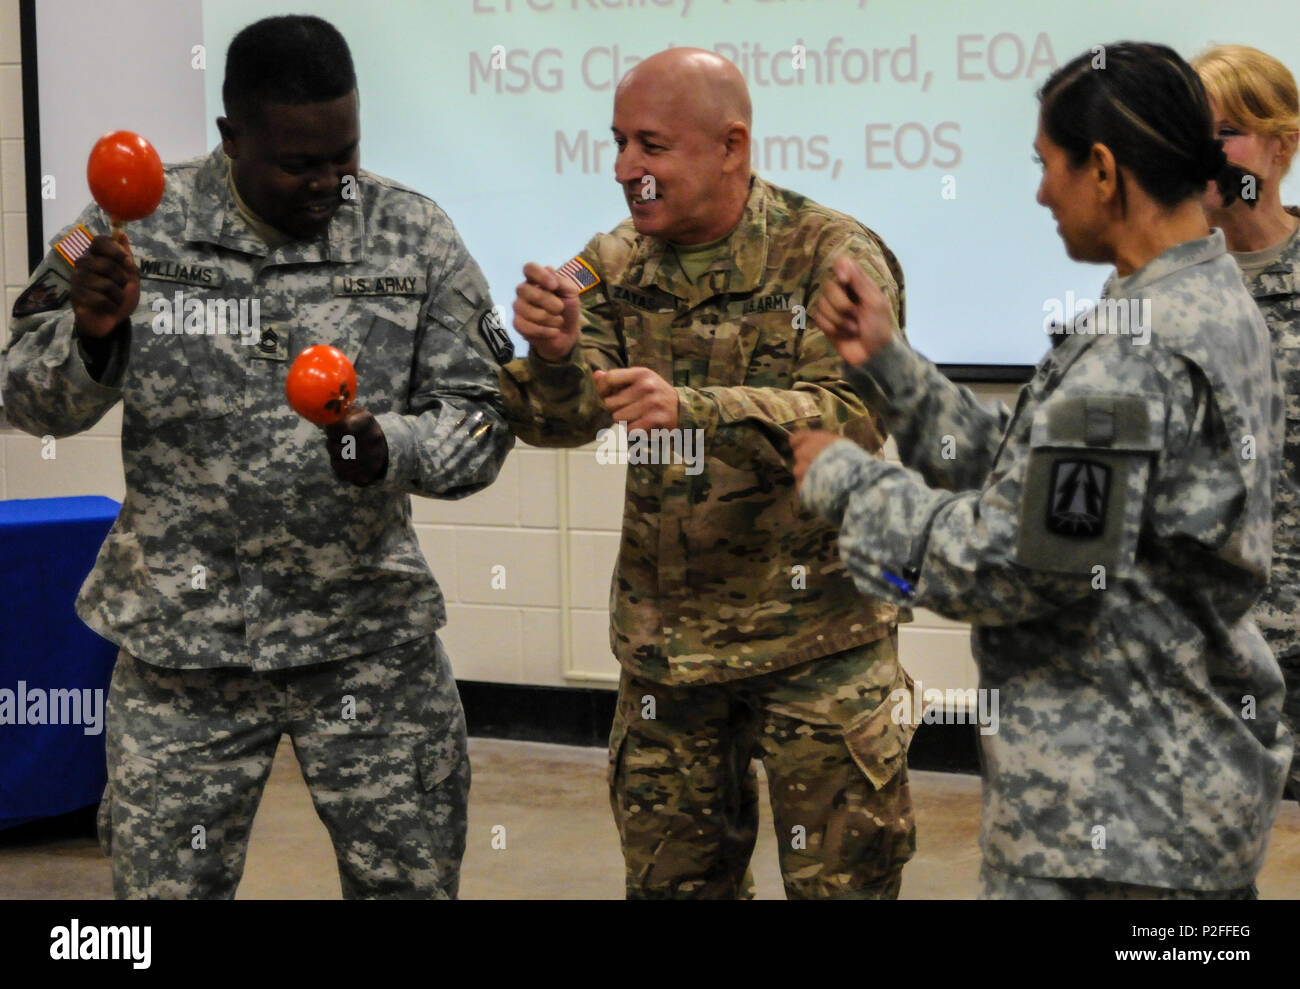 Chief Warrant Officer 5 Miguel Zayas, a Caguas, Puerto Rico native and G36 senior technical advisor, and Master Sgt. Marland Williams, the G1 noncommissioned officer in charge, both from the 335th Signal Command (Theater), discuss how to properly play the maracas during the Equal Opportunity Observance in East Point, Georgia Sept. 18, 2016. During battle assembly weekend, the Equal Opportunity Office conducted its annual observance of National Hispanic Heritage Month. (U.S. Army photo by Sgt. Stephanie A. Hargett) (Released) - Stock Image